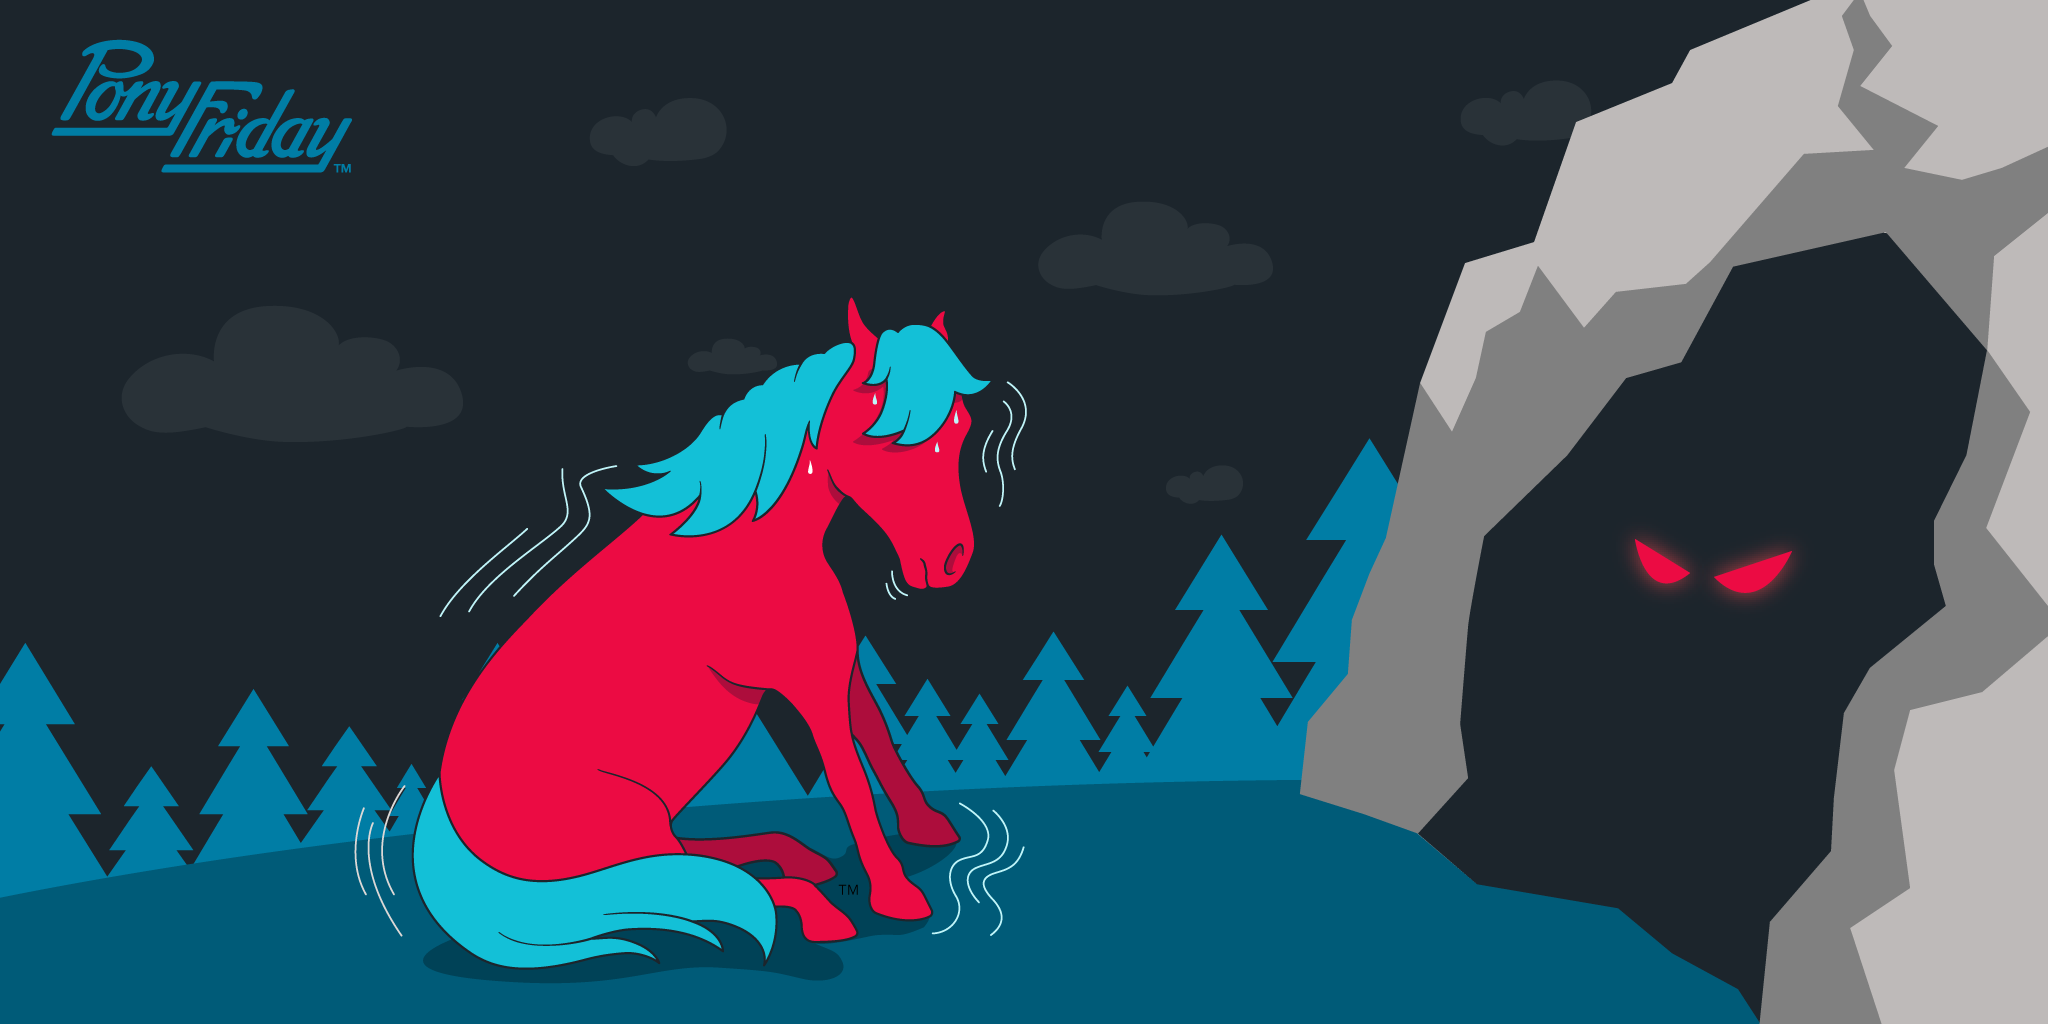 Pony-Friday-Fear-Cave-Monster-Horse-Eyes-Scary-Shaking-Blog-Header.png